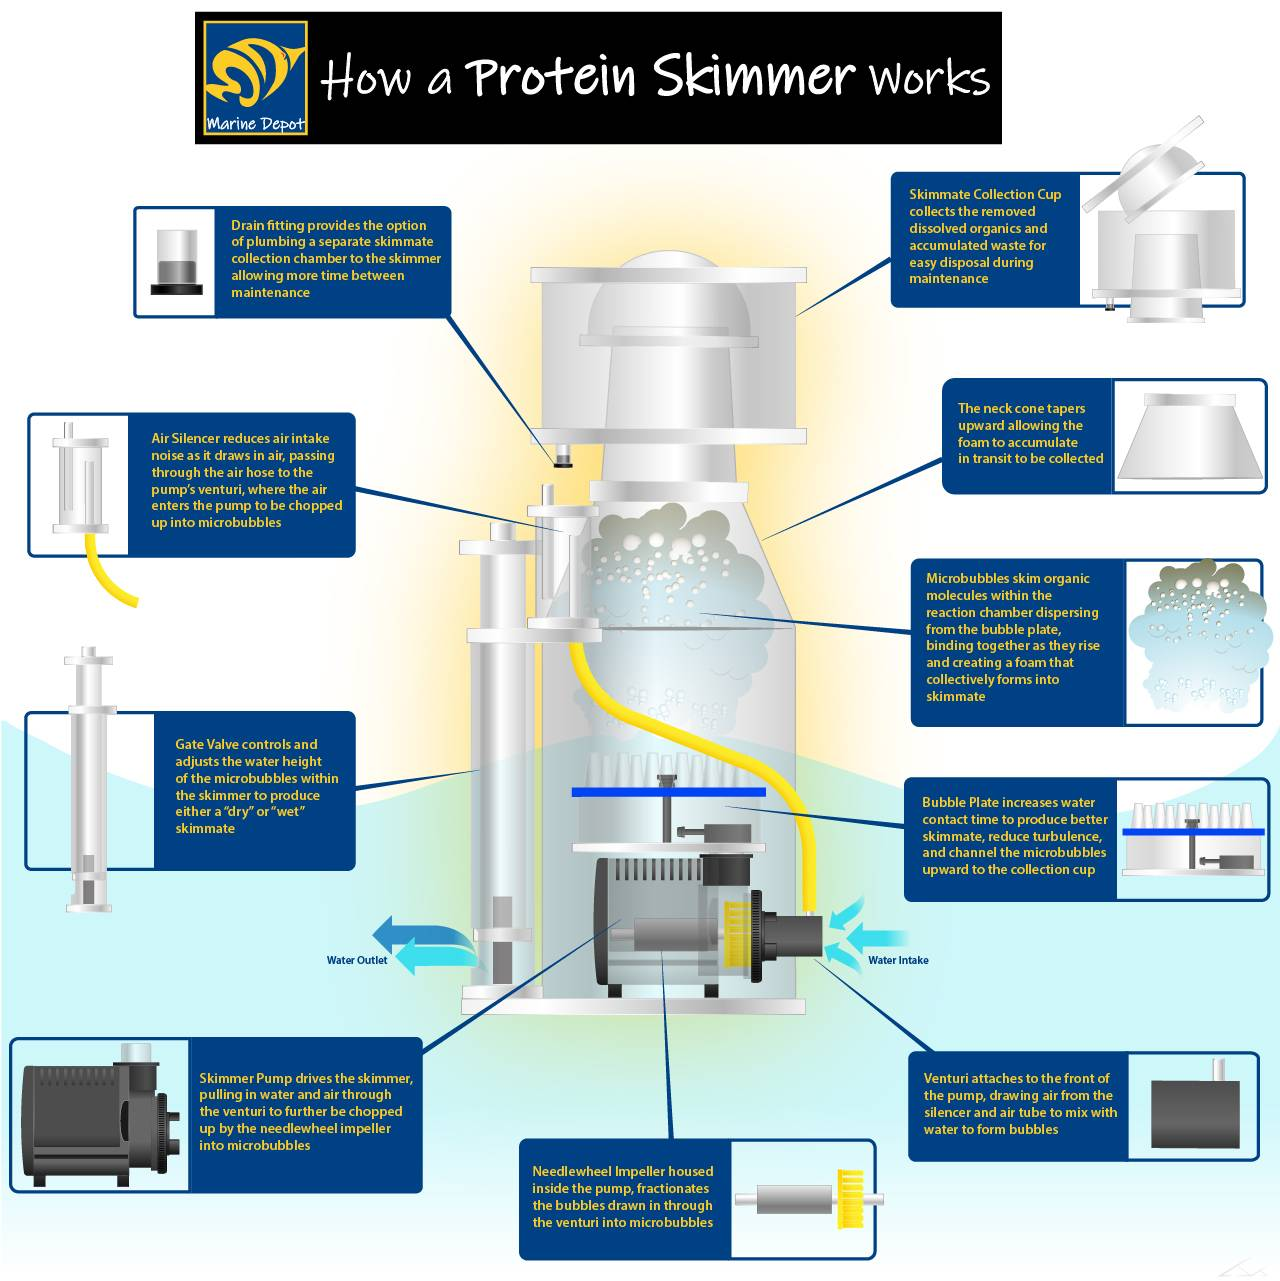 How a protein skimmer works diagram